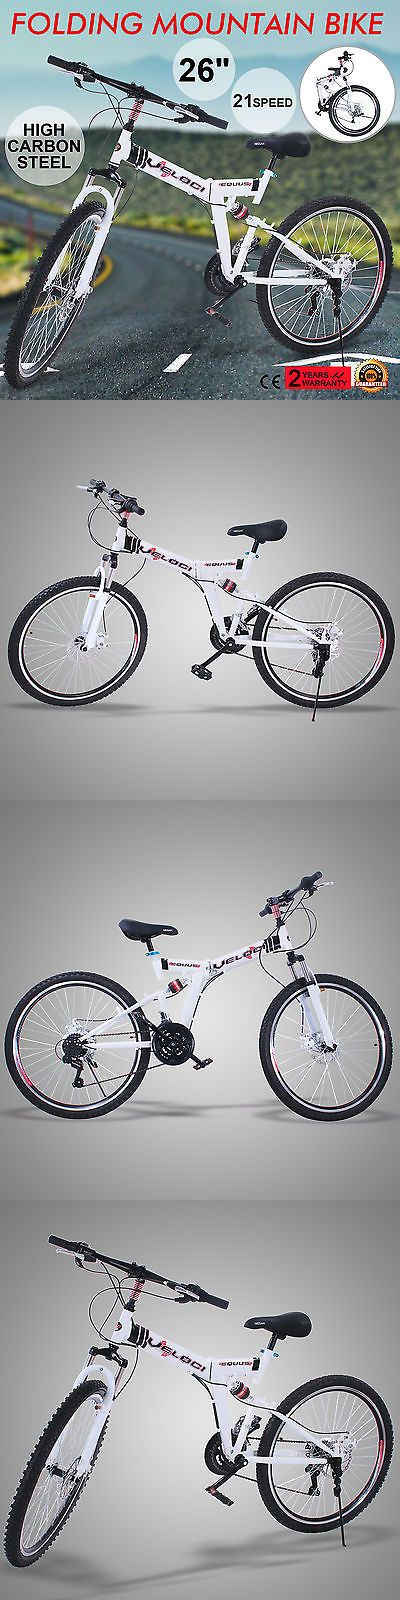 Bicycles 177831: Folding Mountain Bike 26 21 Speed Mtb Bicycle Shimano Mens Bike Carbon Steel BUY IT NOW ONLY: $120.0